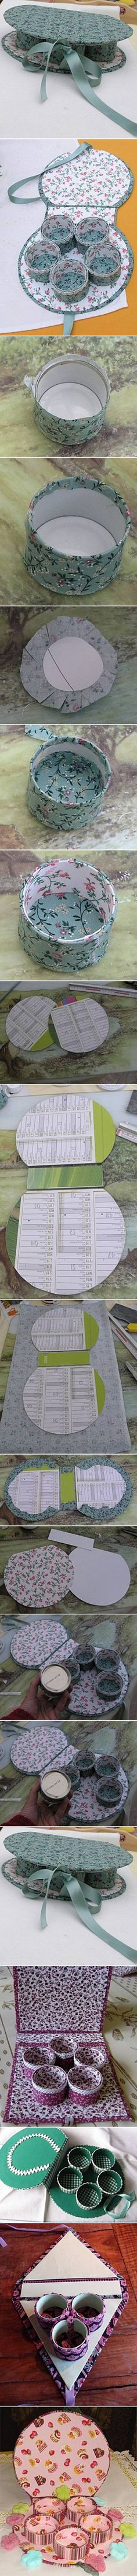 DIY Small Items Organizer DIY Projects